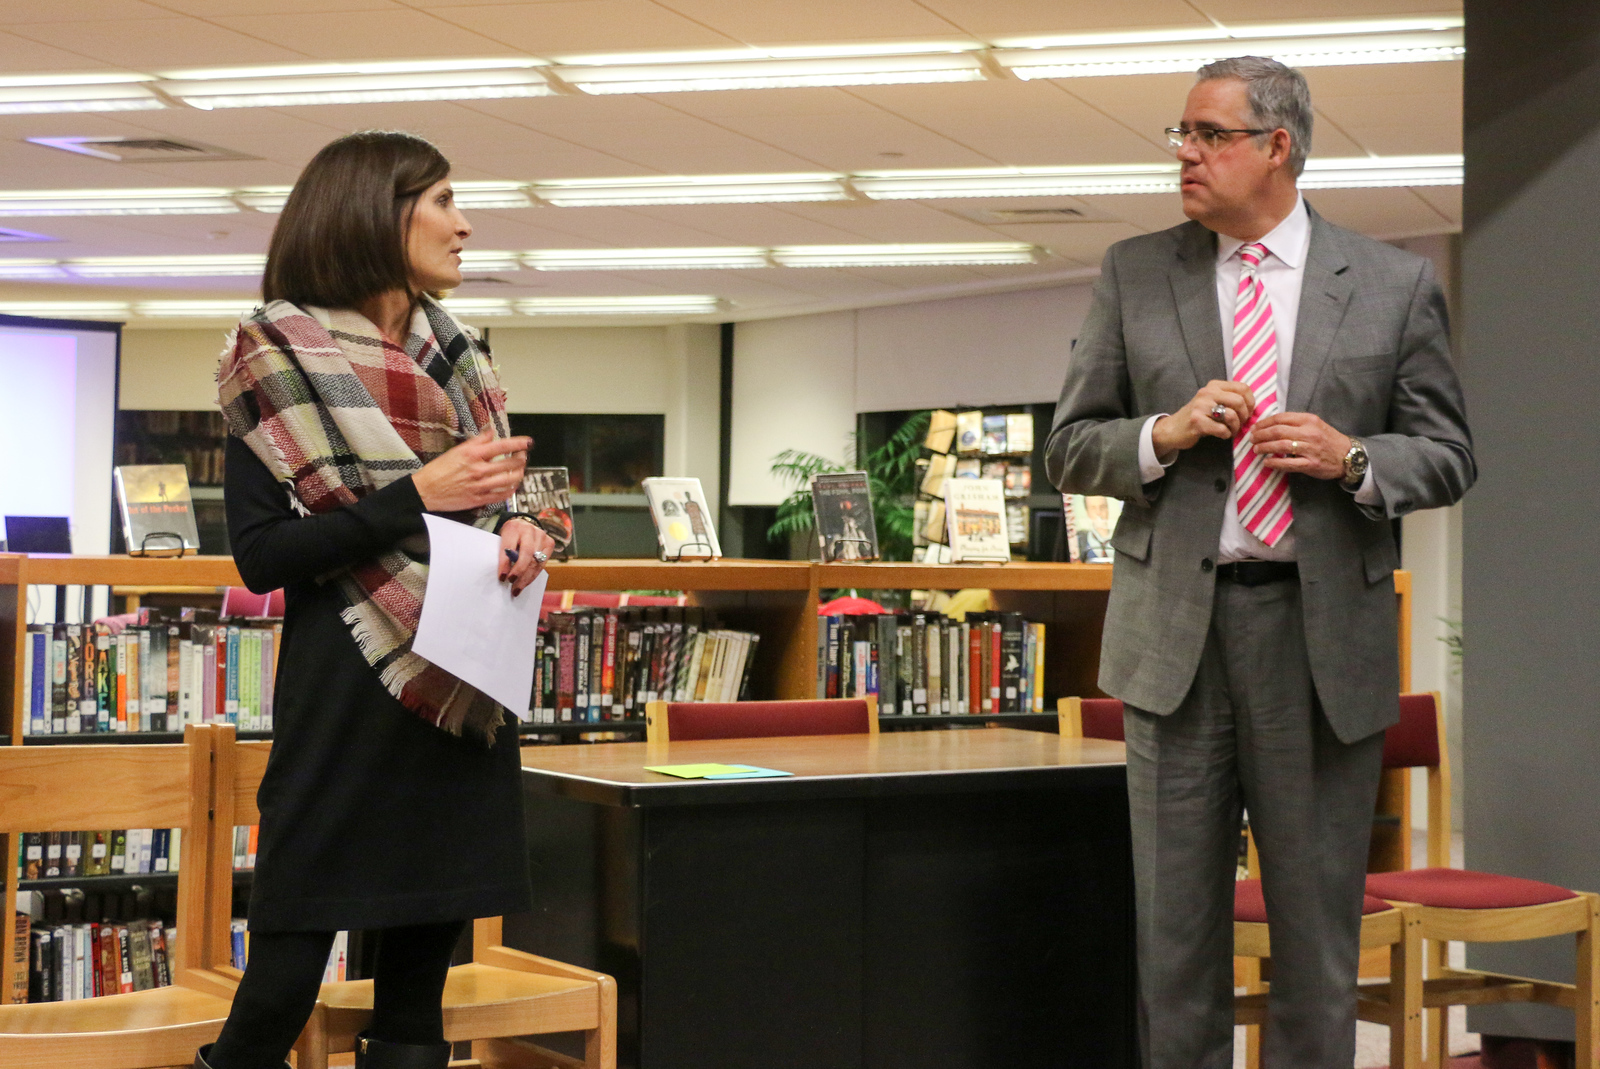 Superintendent Kevin Case was recognized on Tuesday for his 10 years of service in Canton. Here he is seen with Board of Education chair Julie Auseré.<br /> Photo by John Fitts